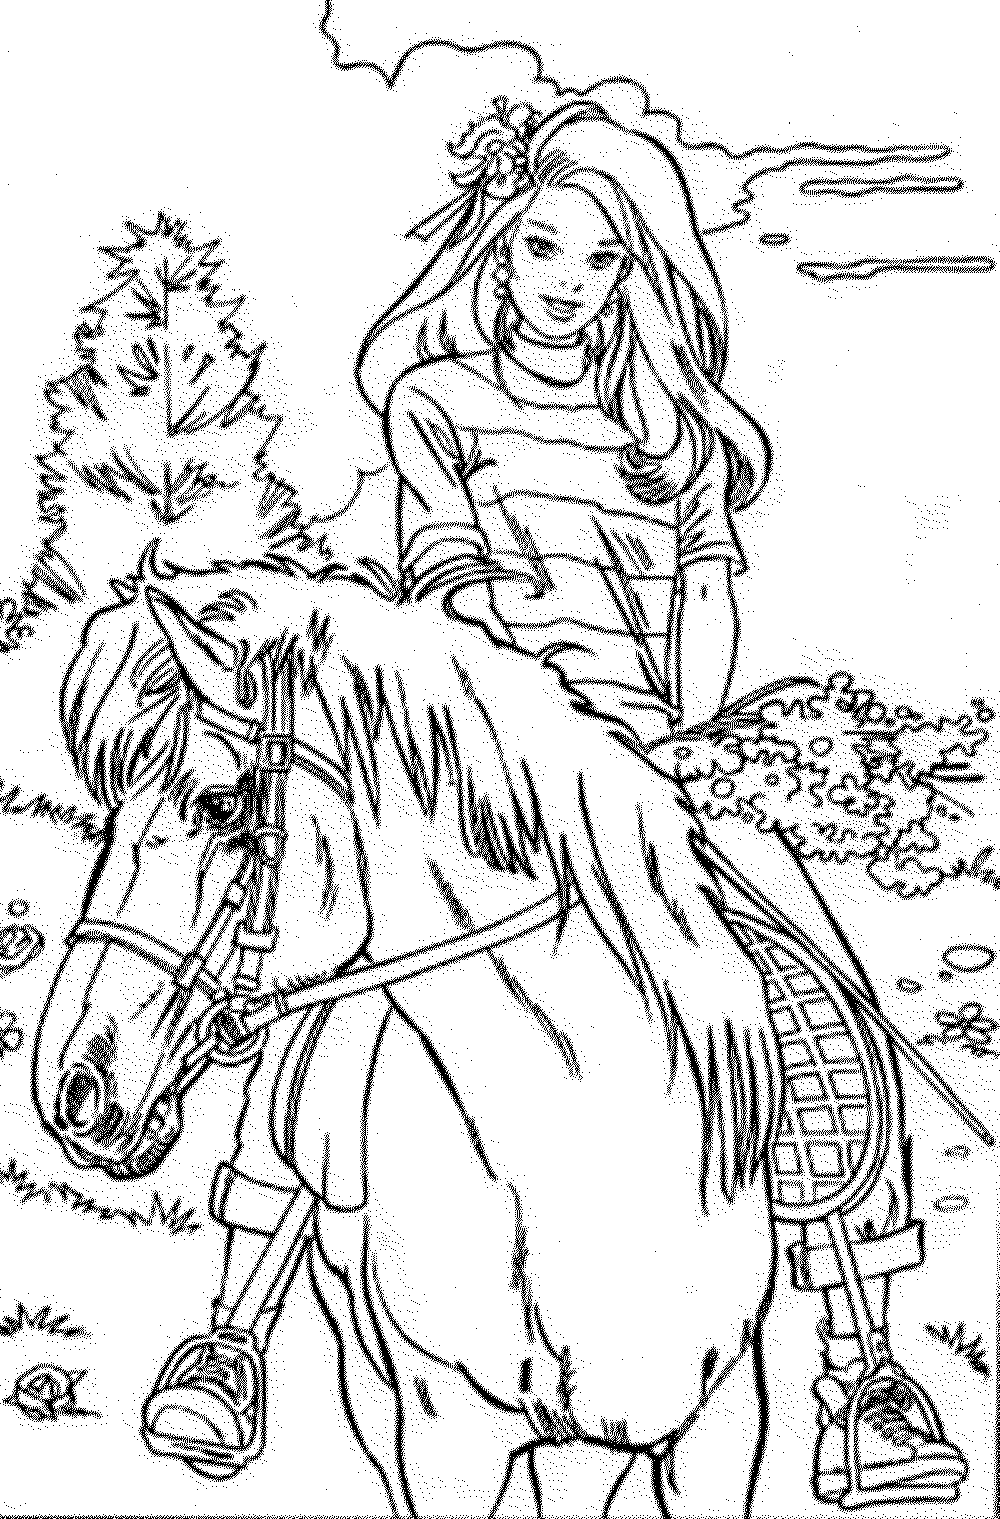 barbie-horse-coloring-pages | | BestAppsForKids.com